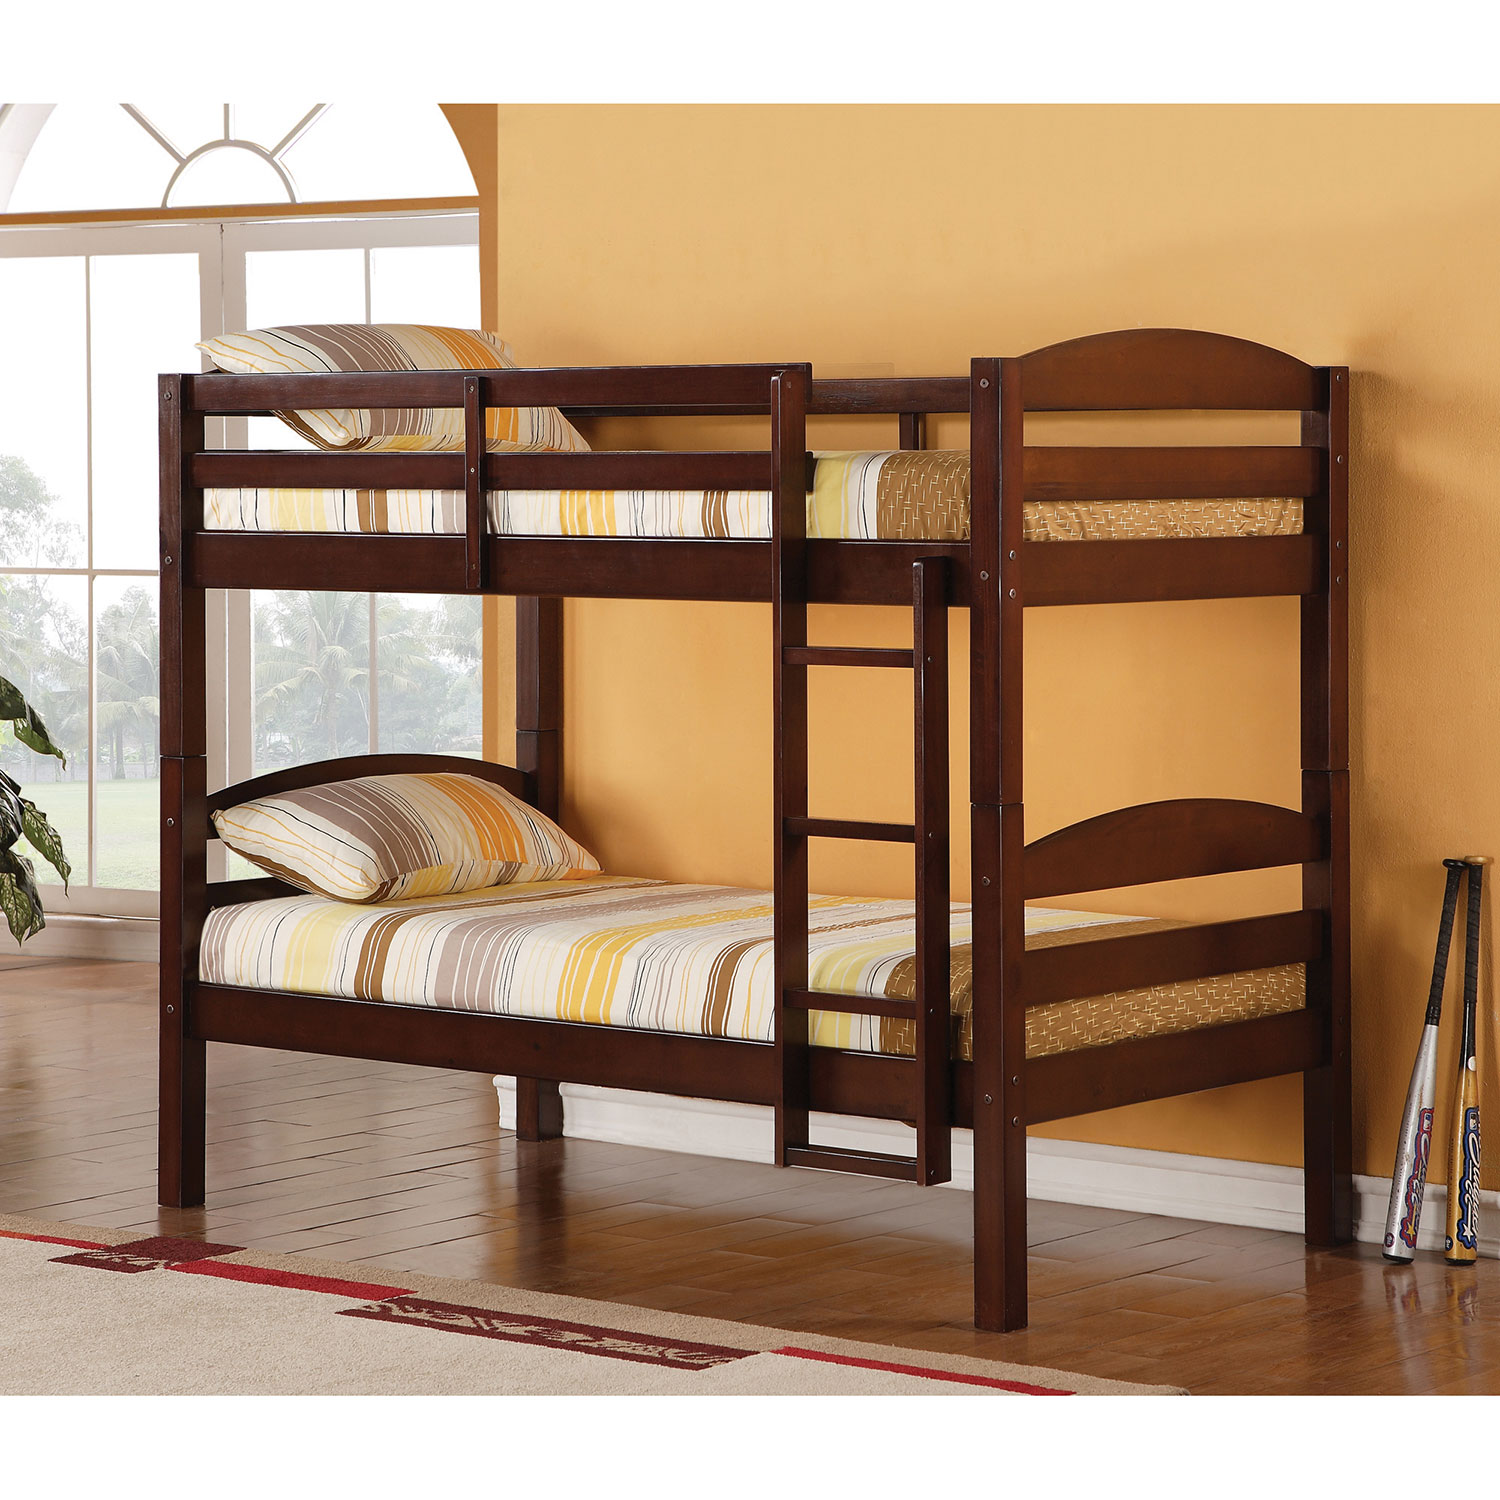 Traditional Bunk Bed Single Espresso Kids Beds Best Buy Canada